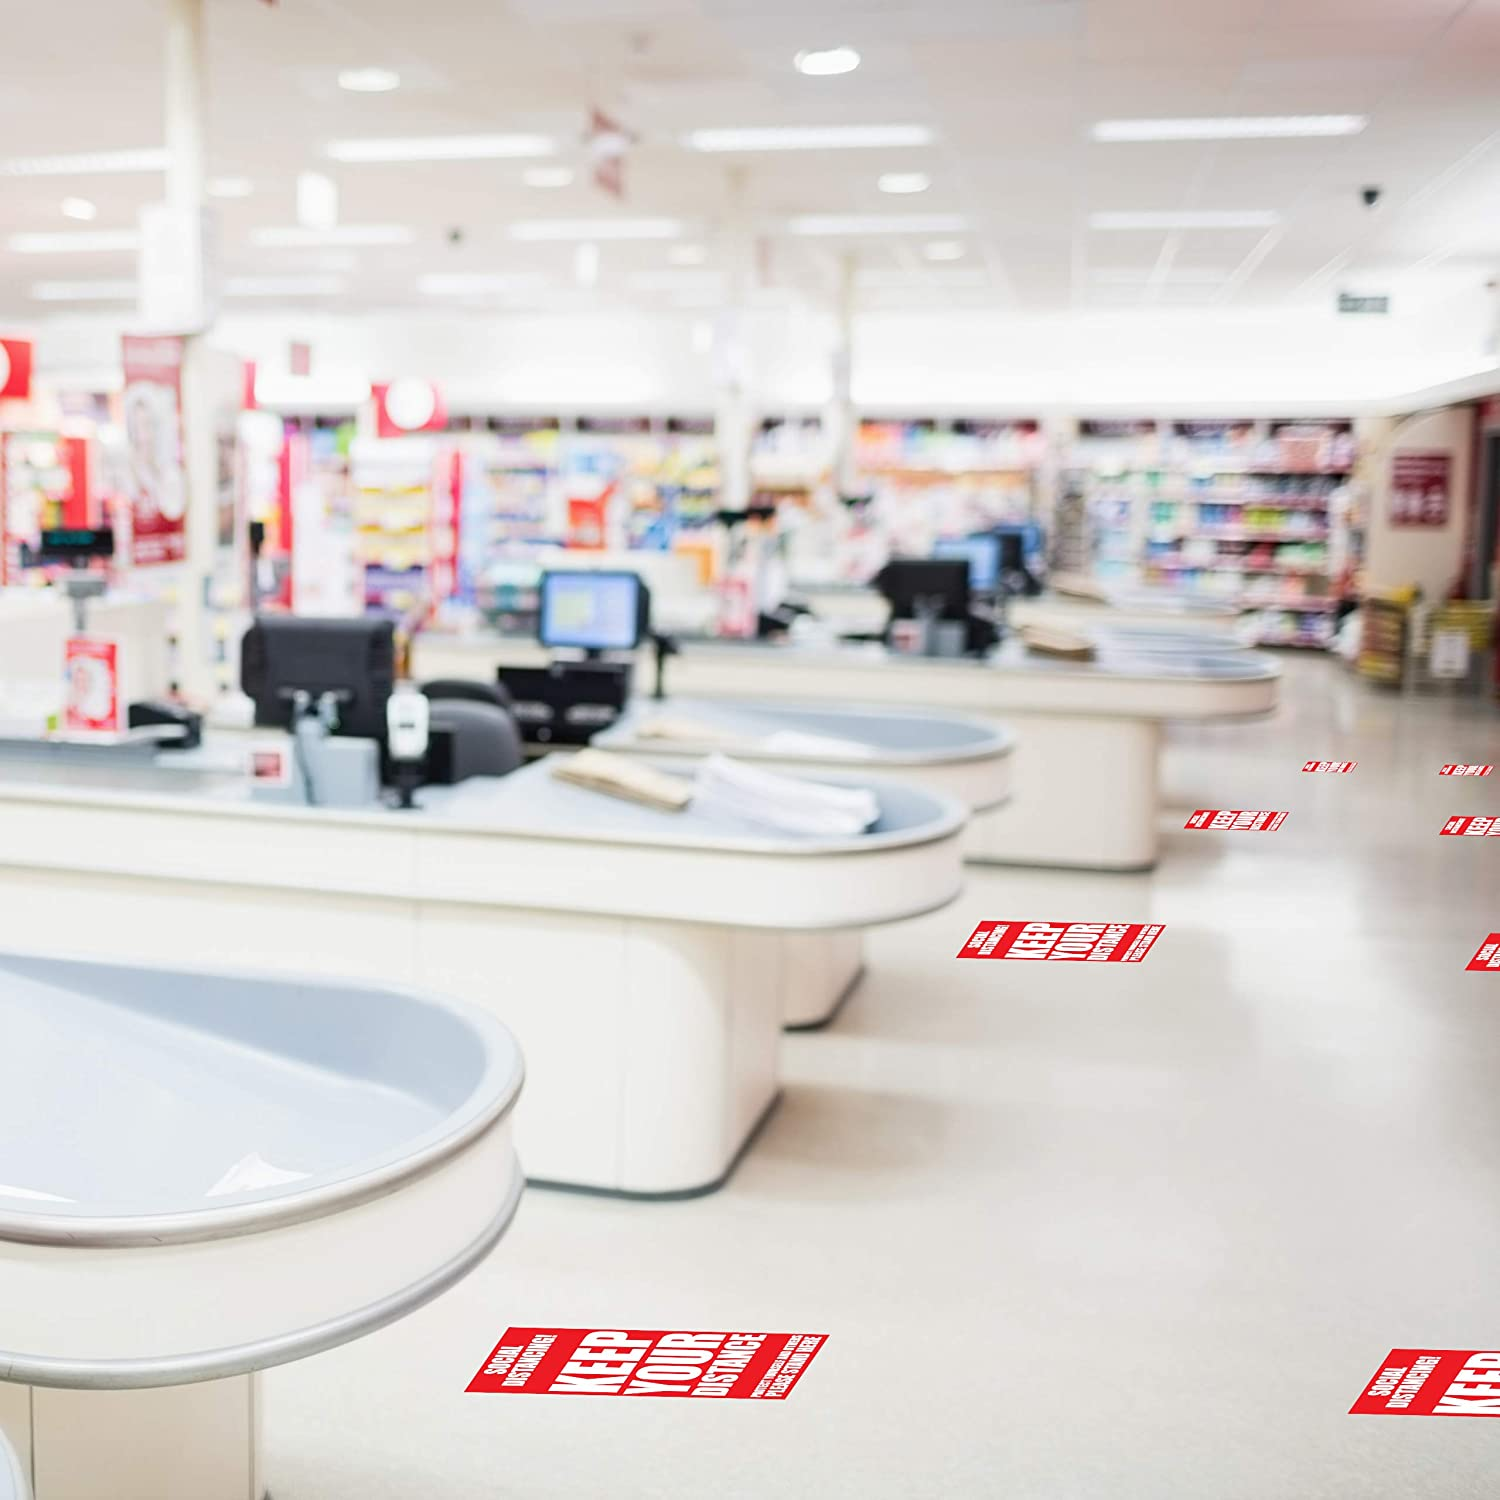 Banks 12 Decals 1 Pack Pharmacies 12 Pack for Groceries Social DistancingKeep Your Distance Stand Here Line Crowd Control Floor Sticker Decals and Queues